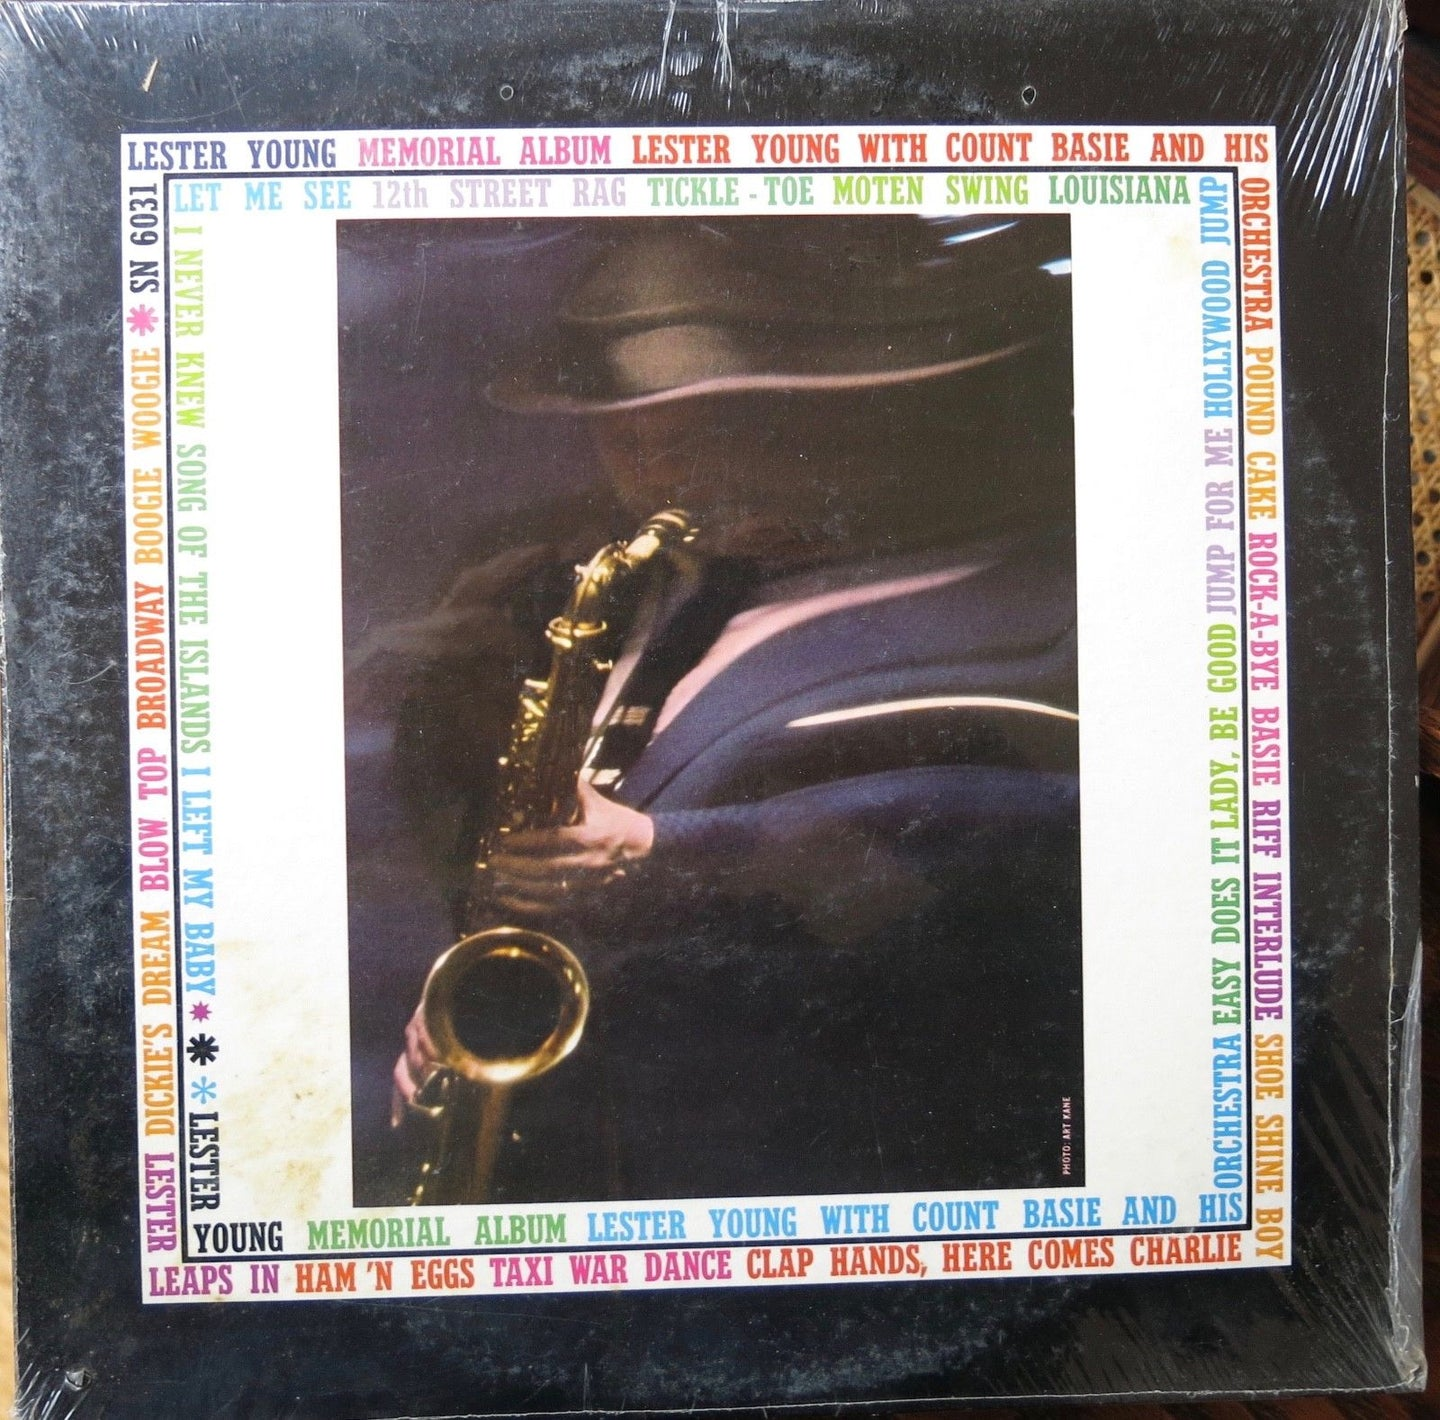 Lester Young Memorial Album 2 Record Set - Epic